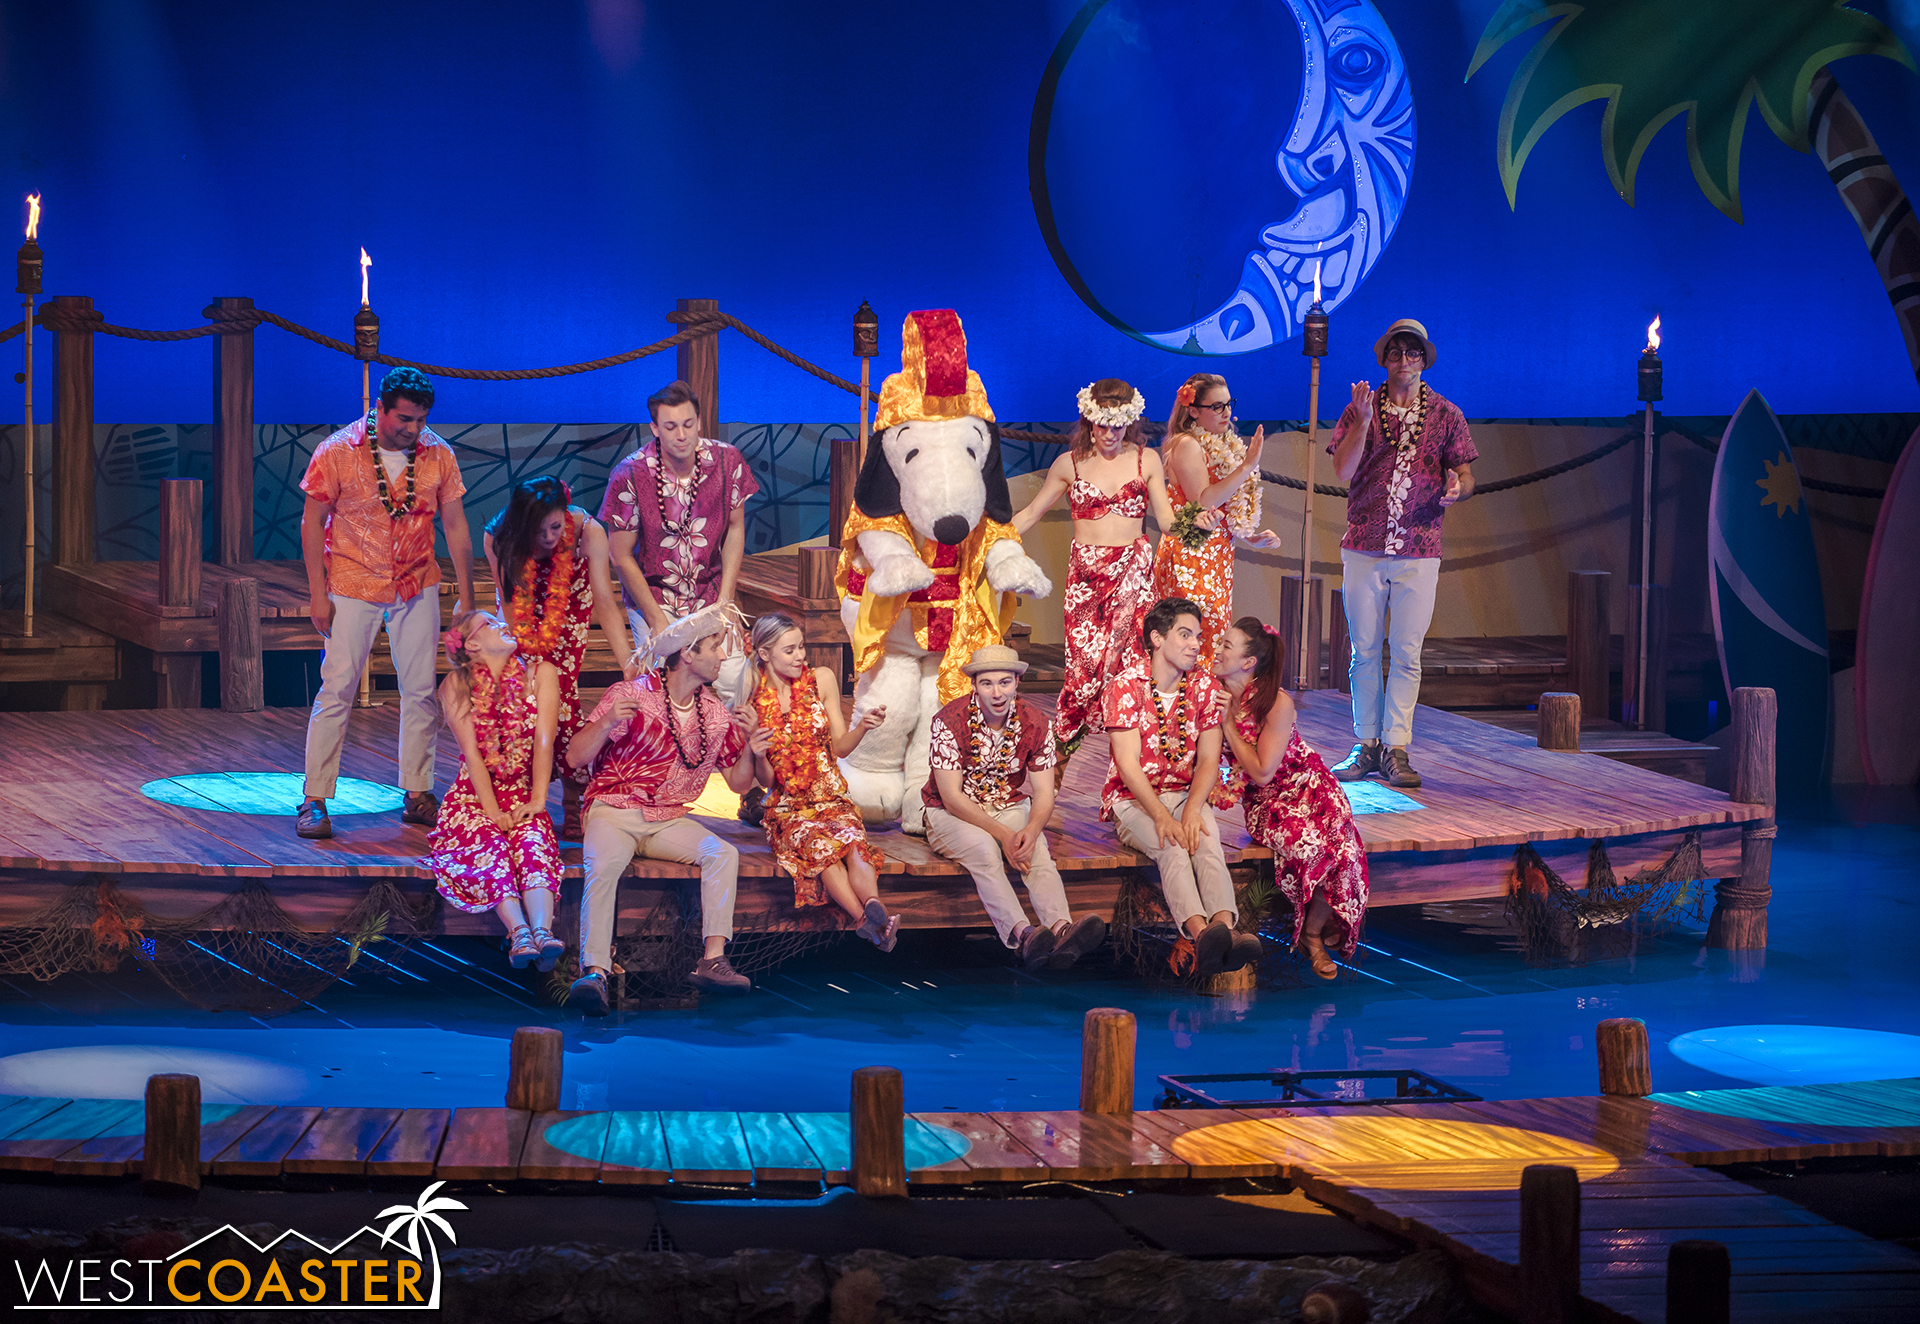 The joyous performance pleases the apparent tiki gods who've been watching, and the group is rewarded with treasure spilling out of the tiki statues on either side of the stage.